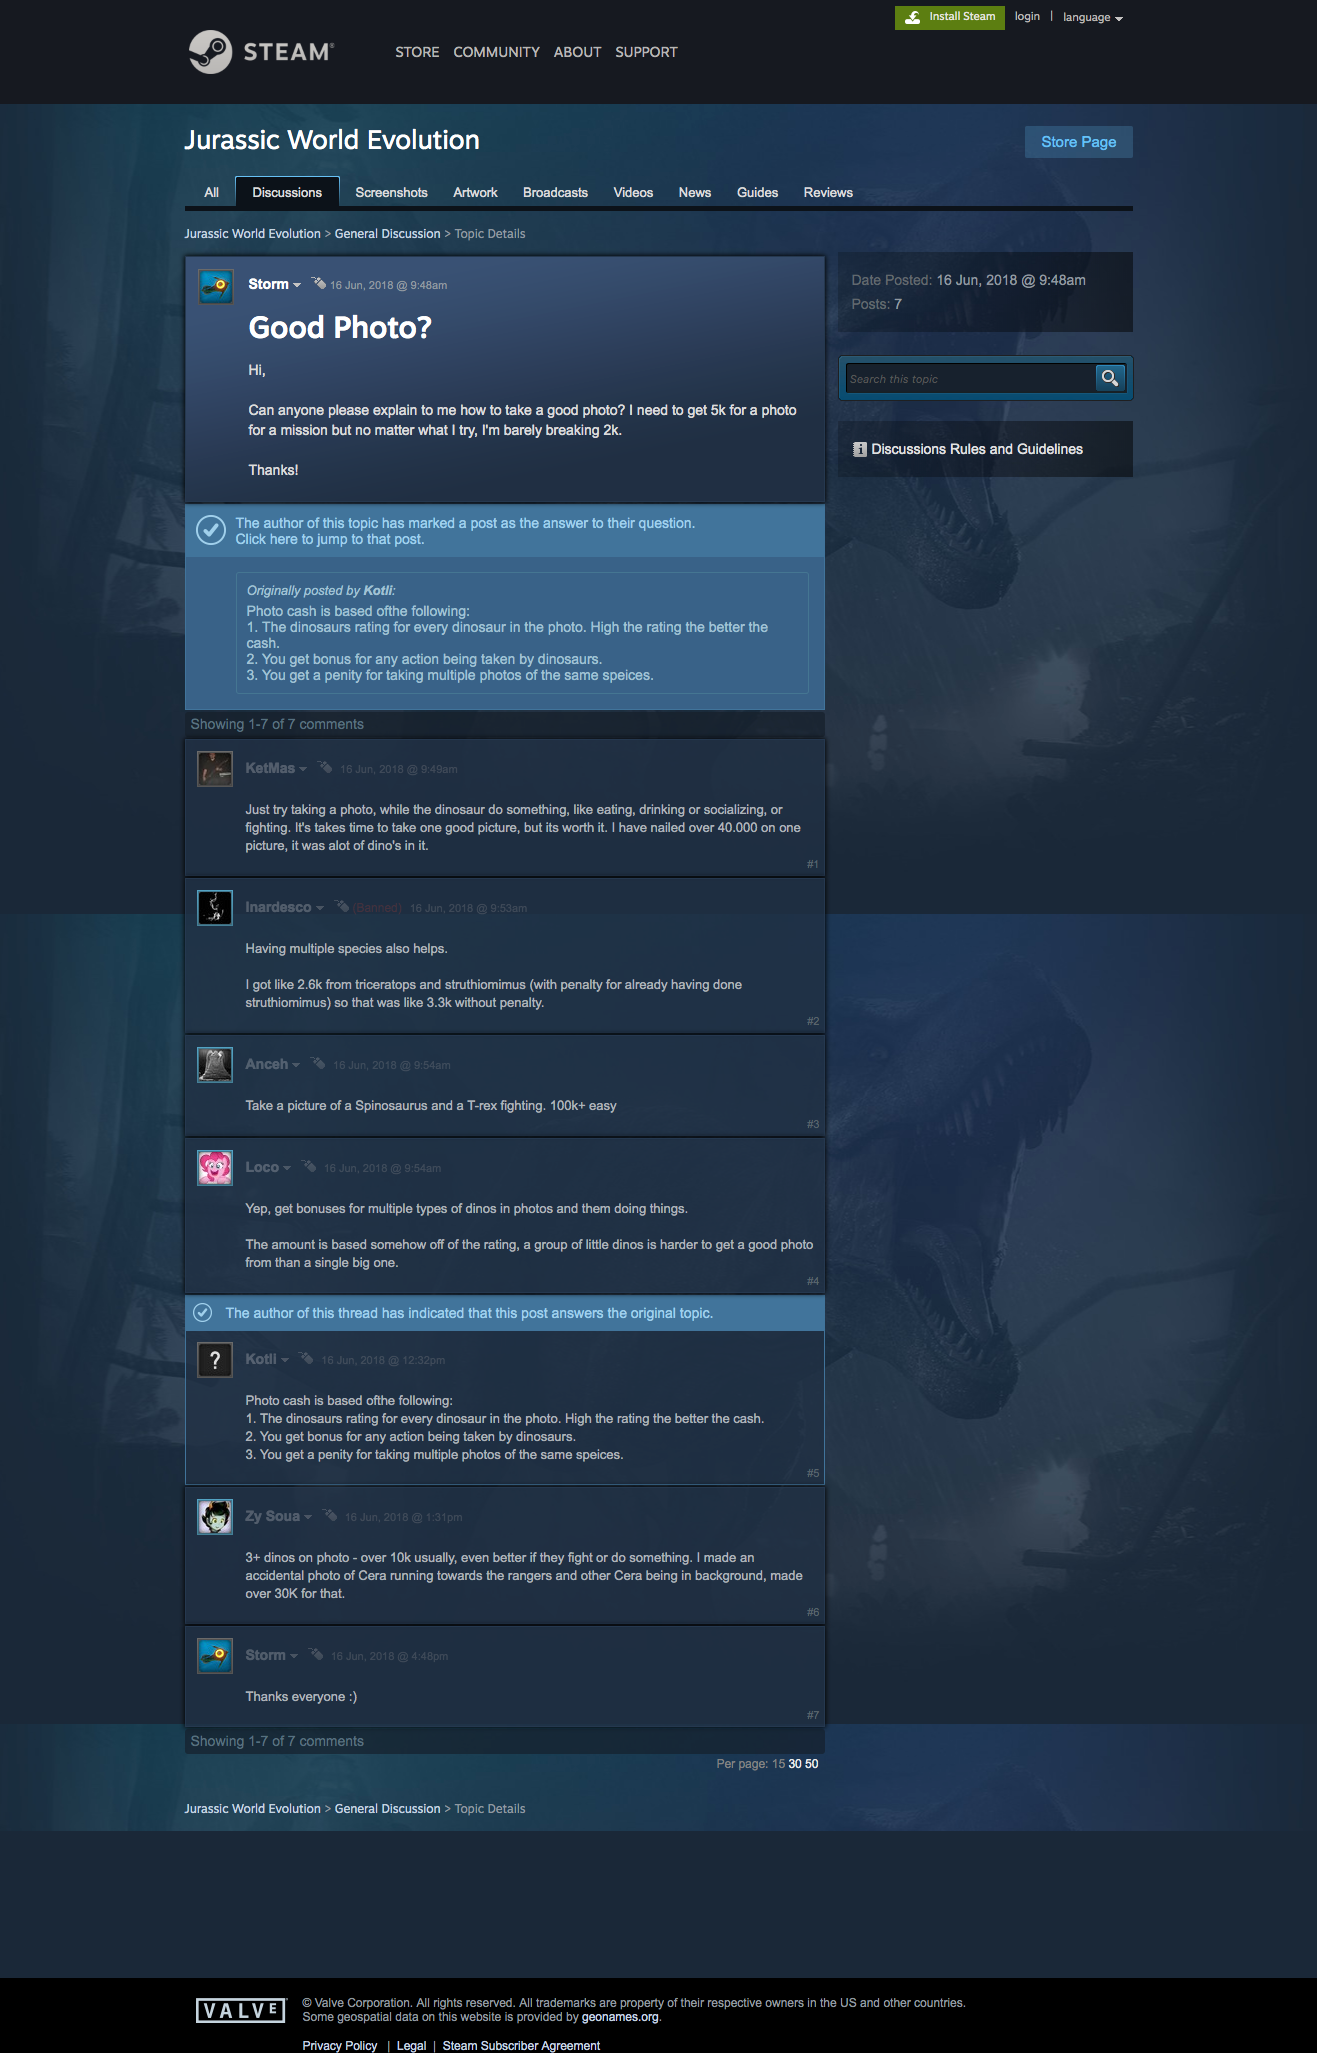 screencapture-steamcommunity-app-648350-discussions-1-3559414588256806823-2019-05-29-15_27_09.png